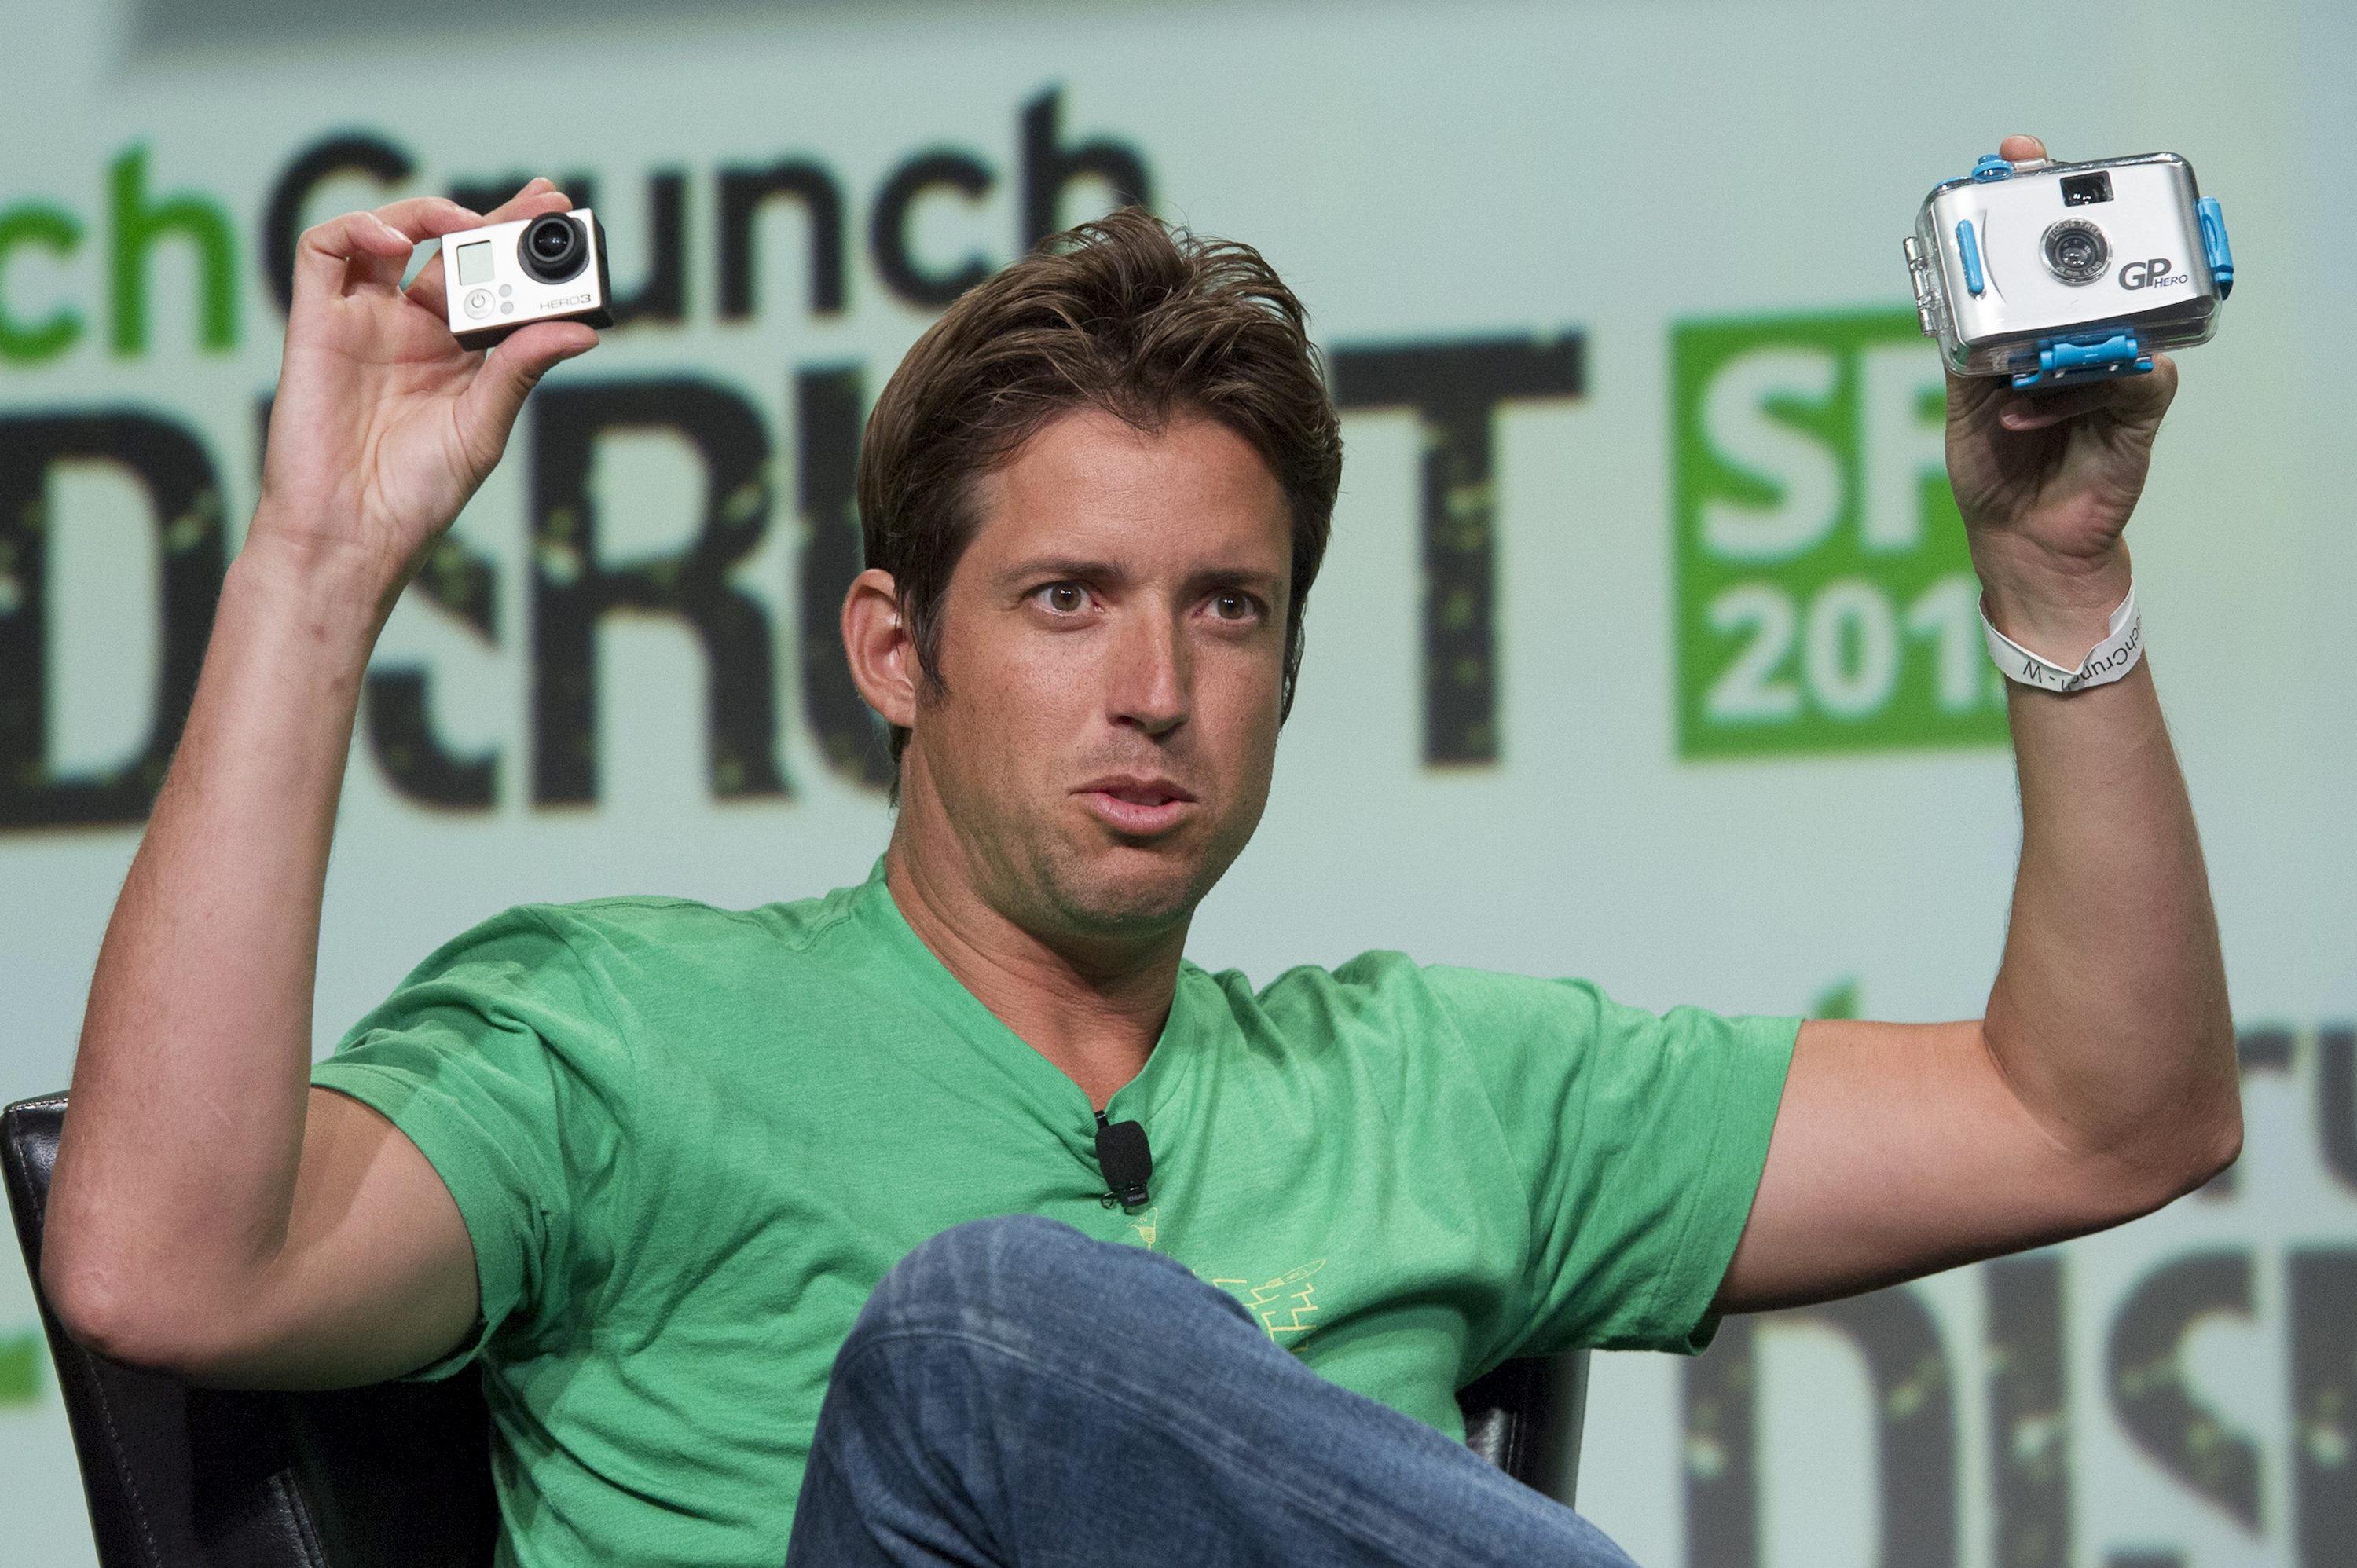 Key Speakers At The TechCrunch Disrupt SF 2013 Summit